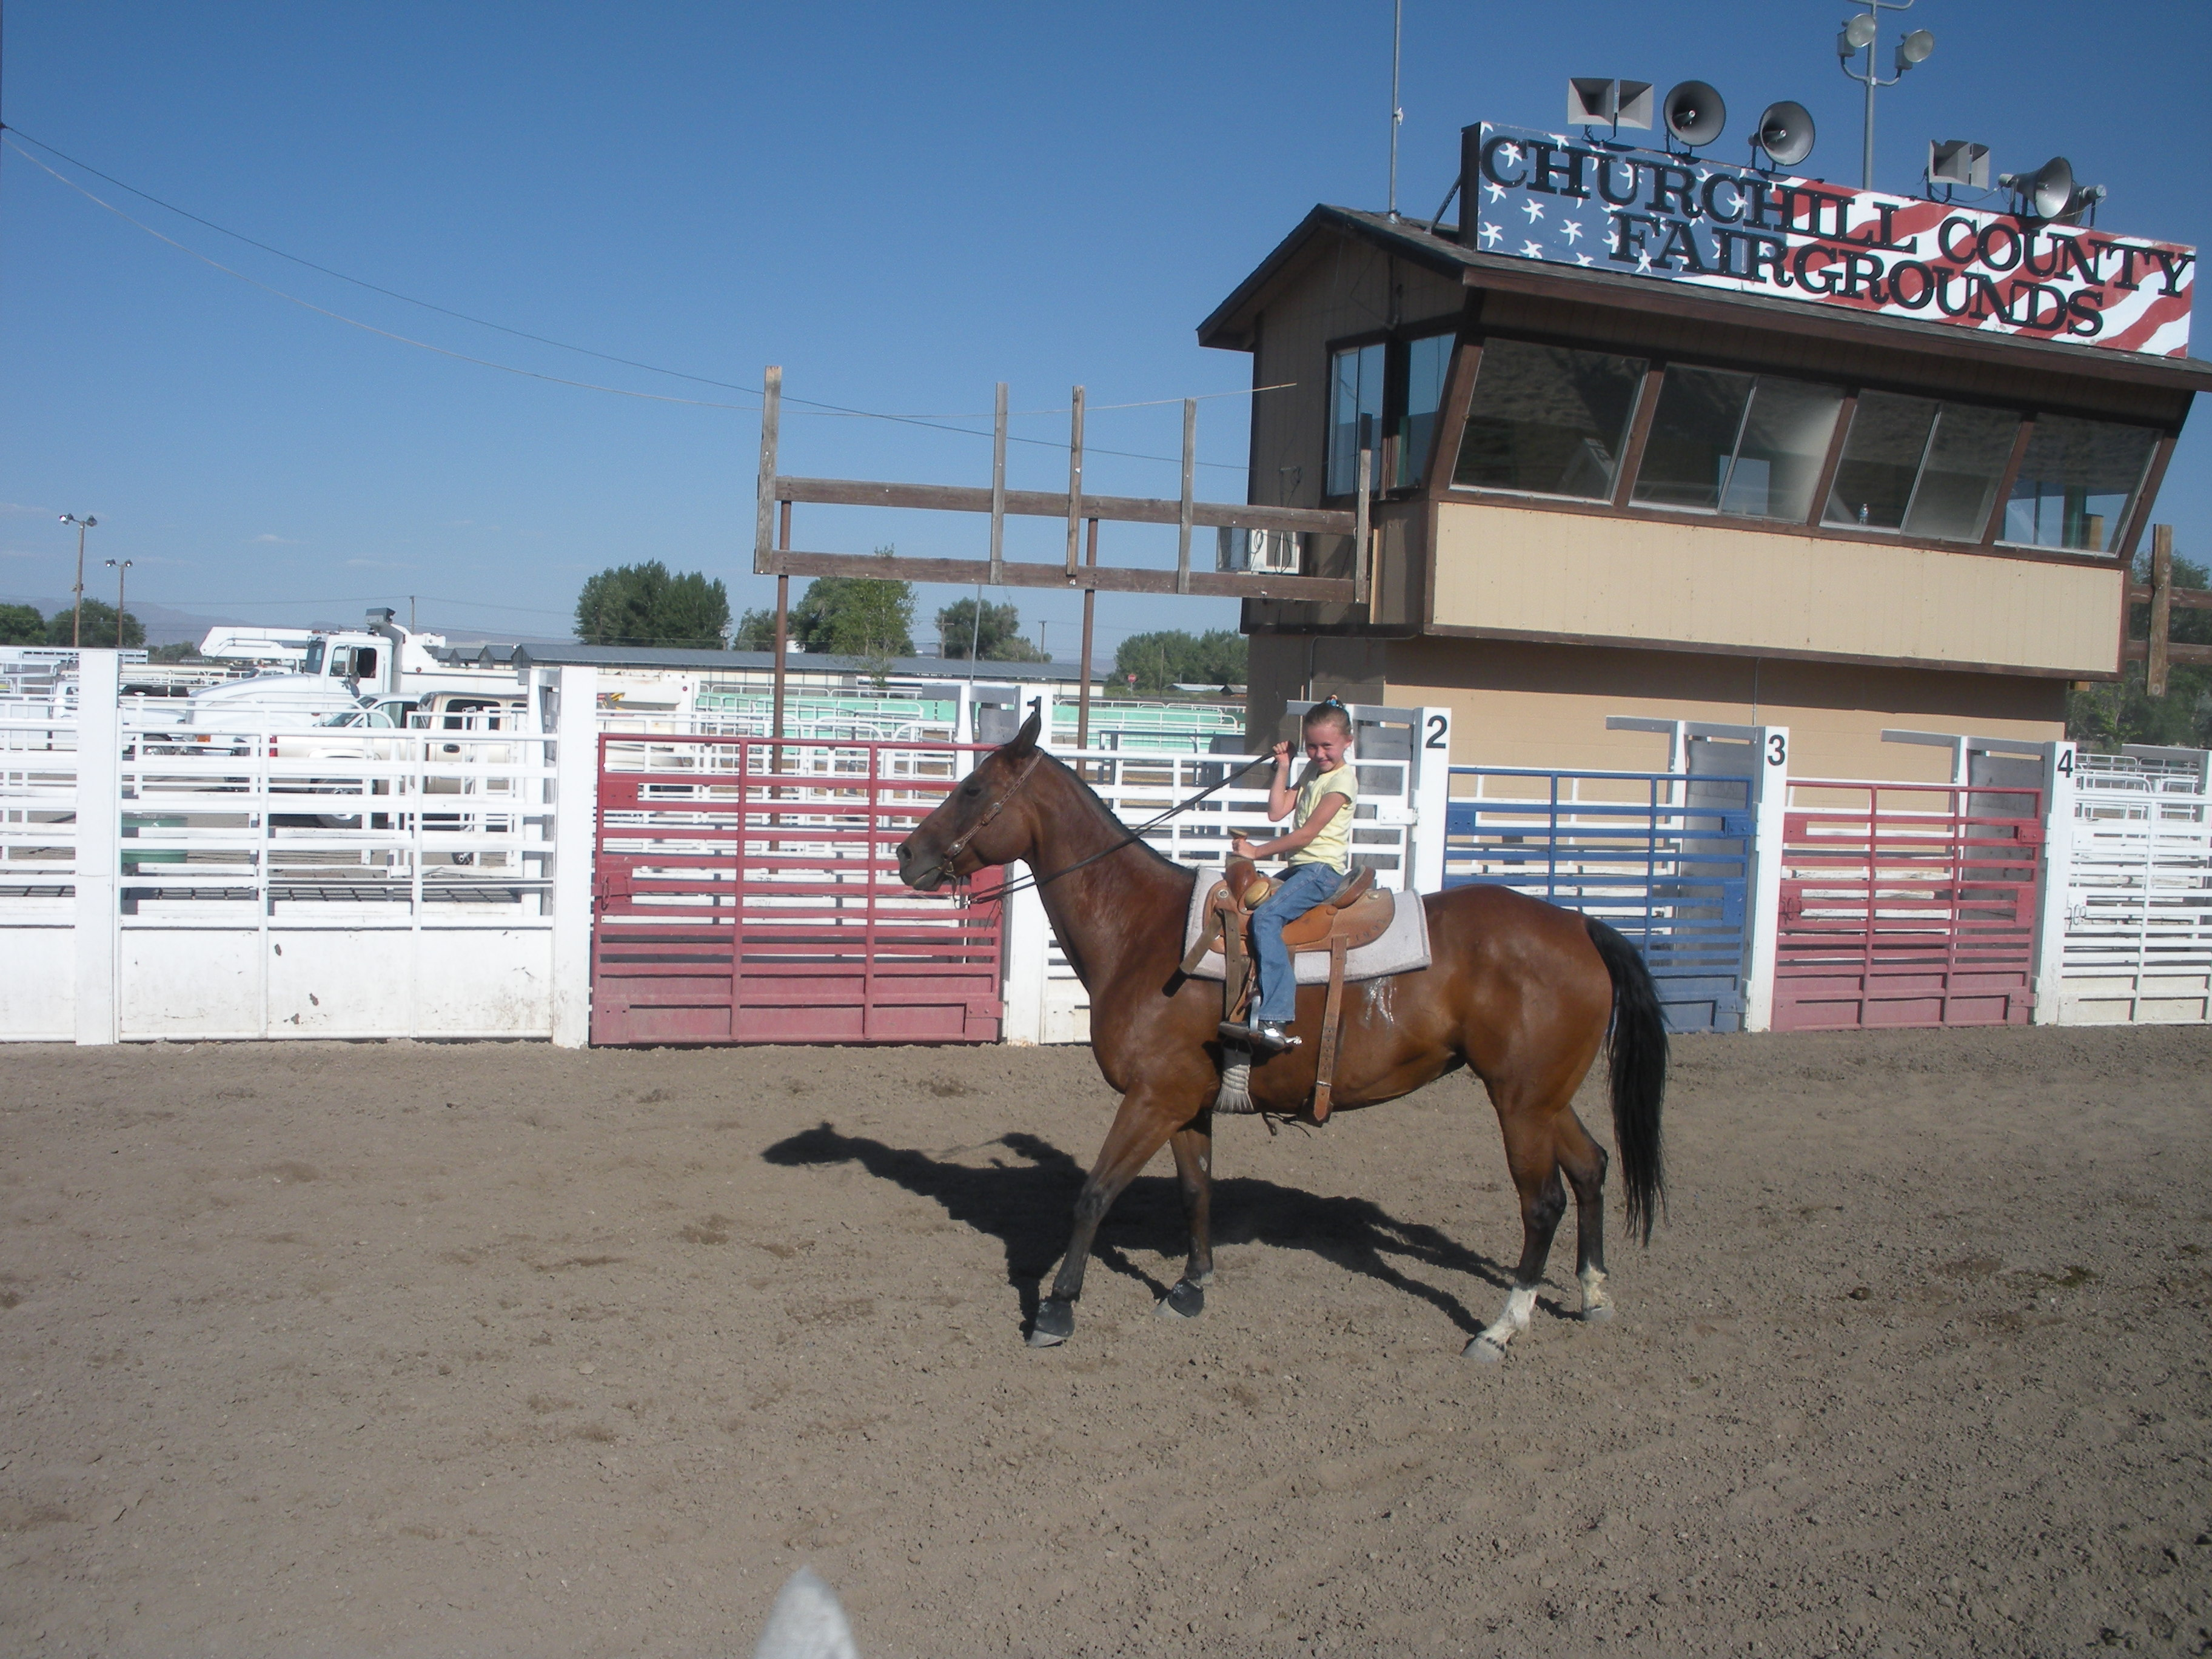 Girl on Horse in Arena